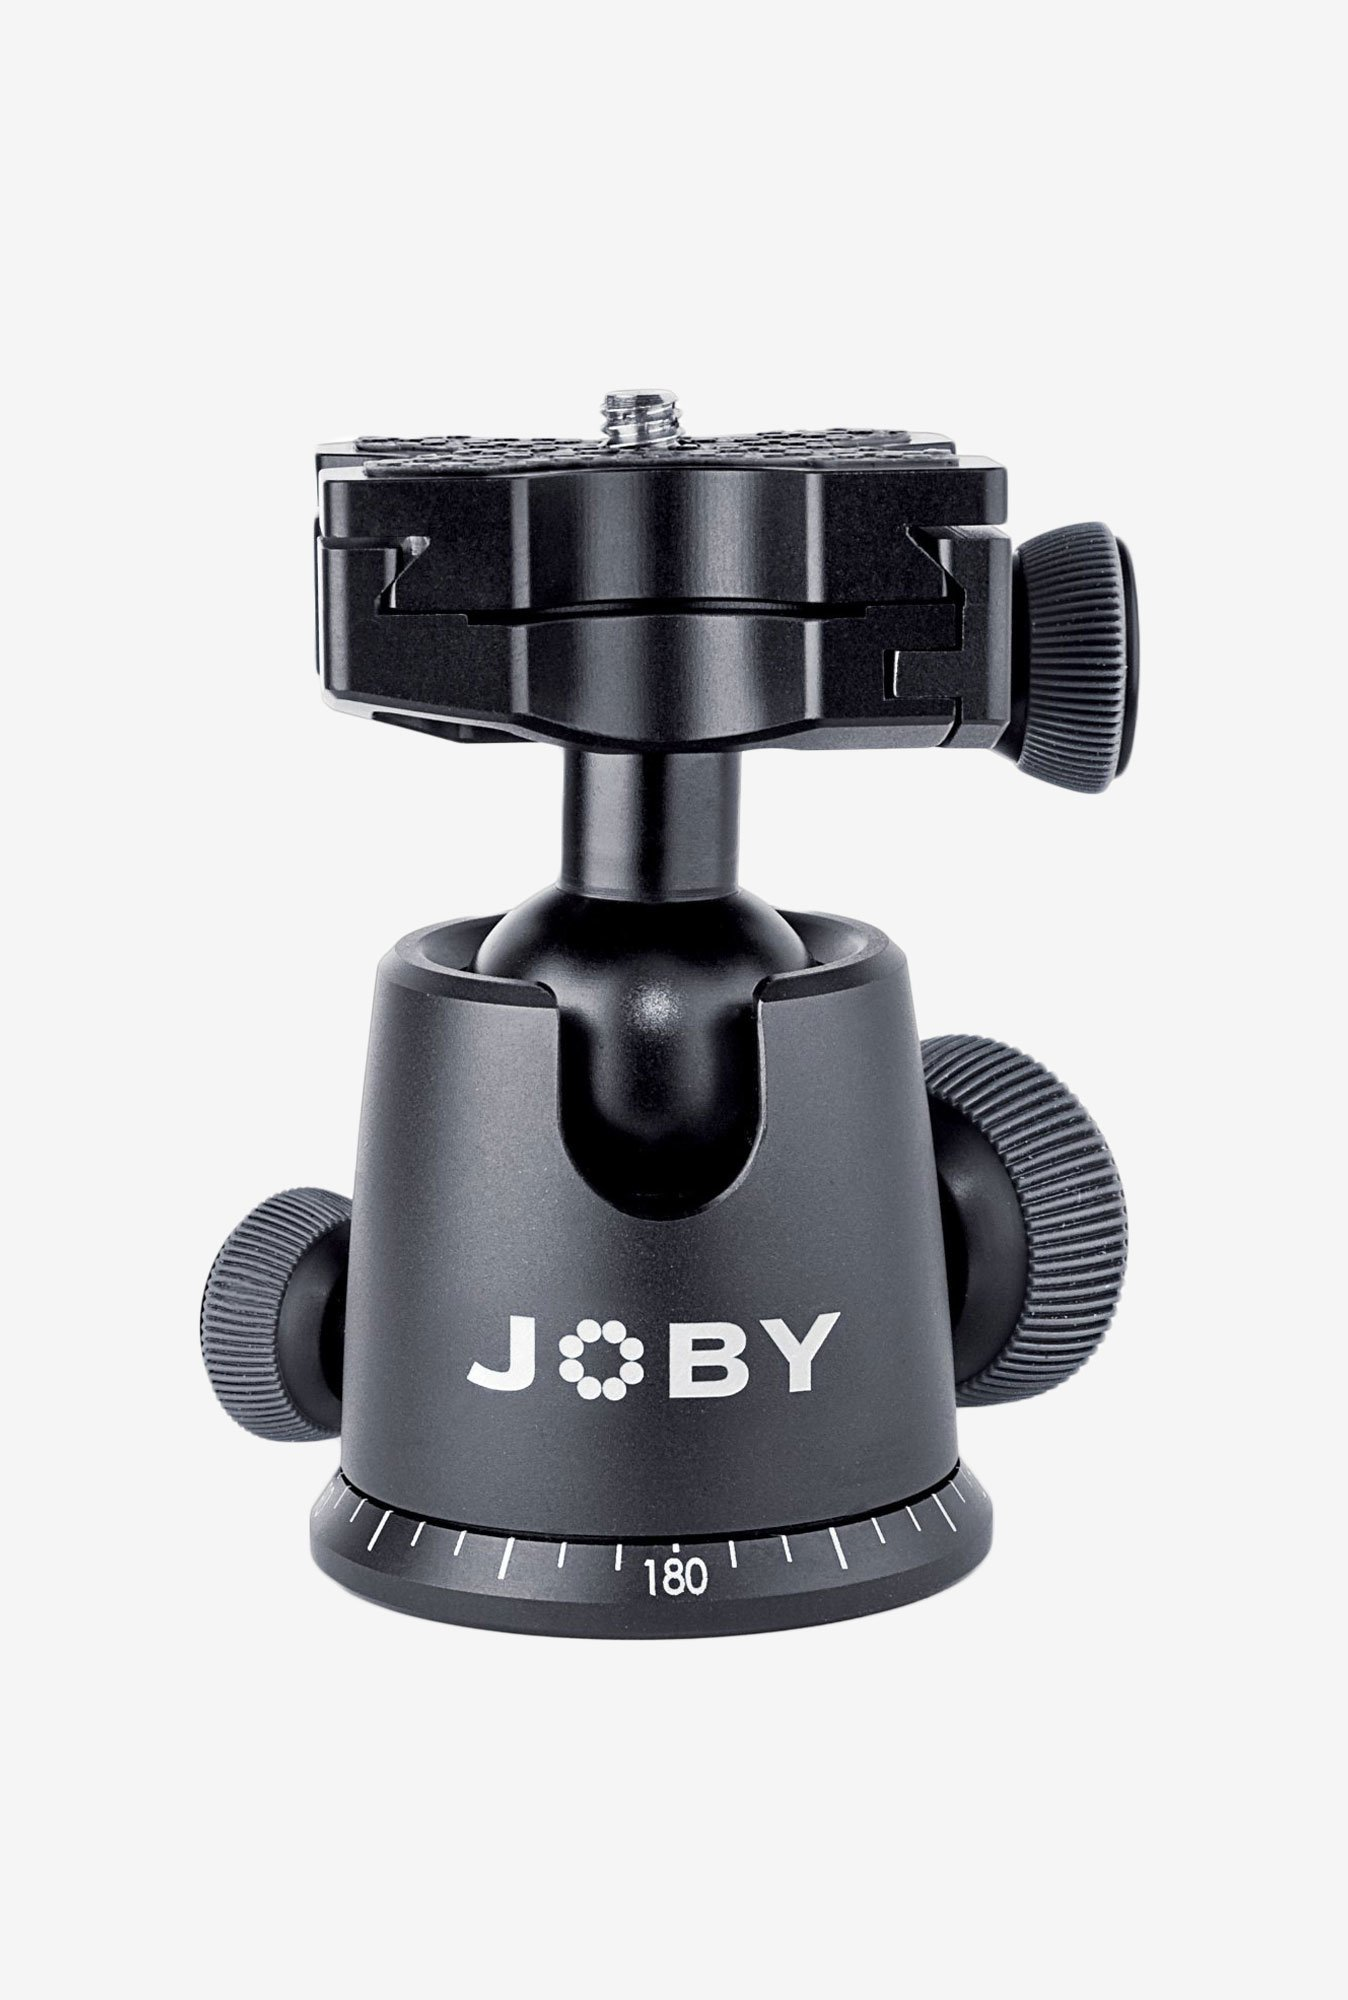 Joby JB00157-CEN Ballhead X for GorillaPod Focus (Black)